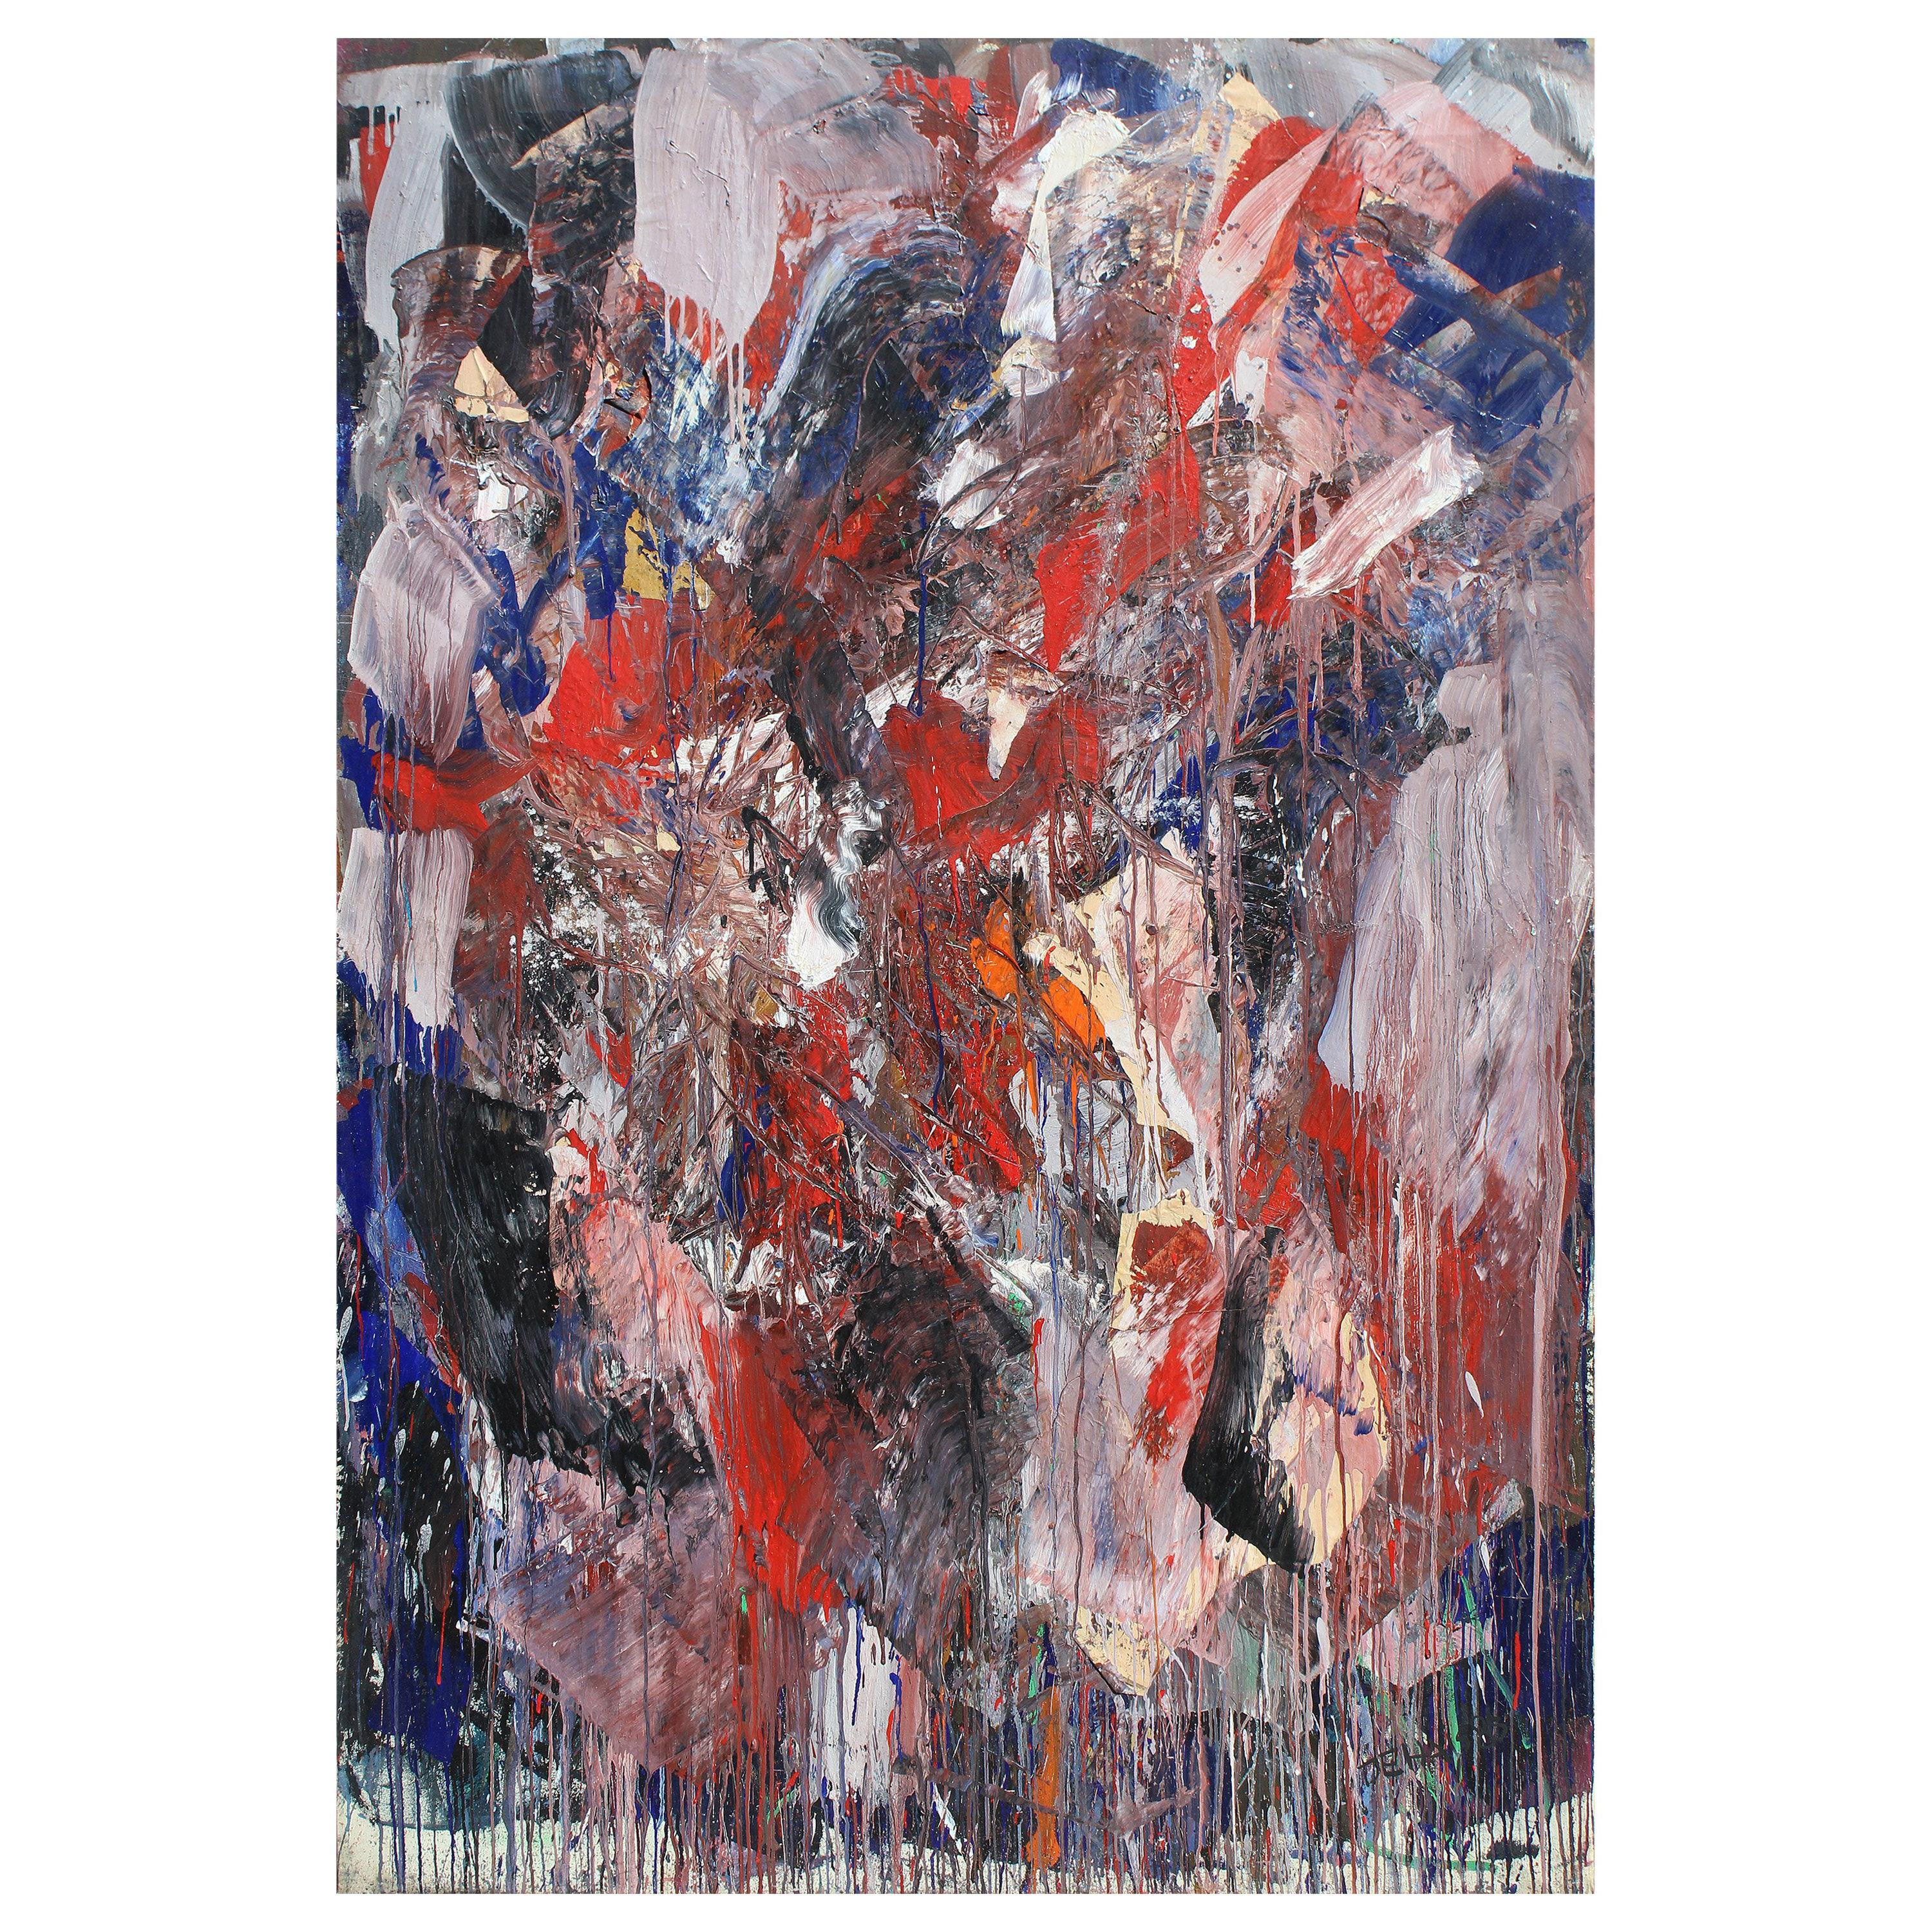 Monumental Abstract Oil Painting on Canvas by Dehais